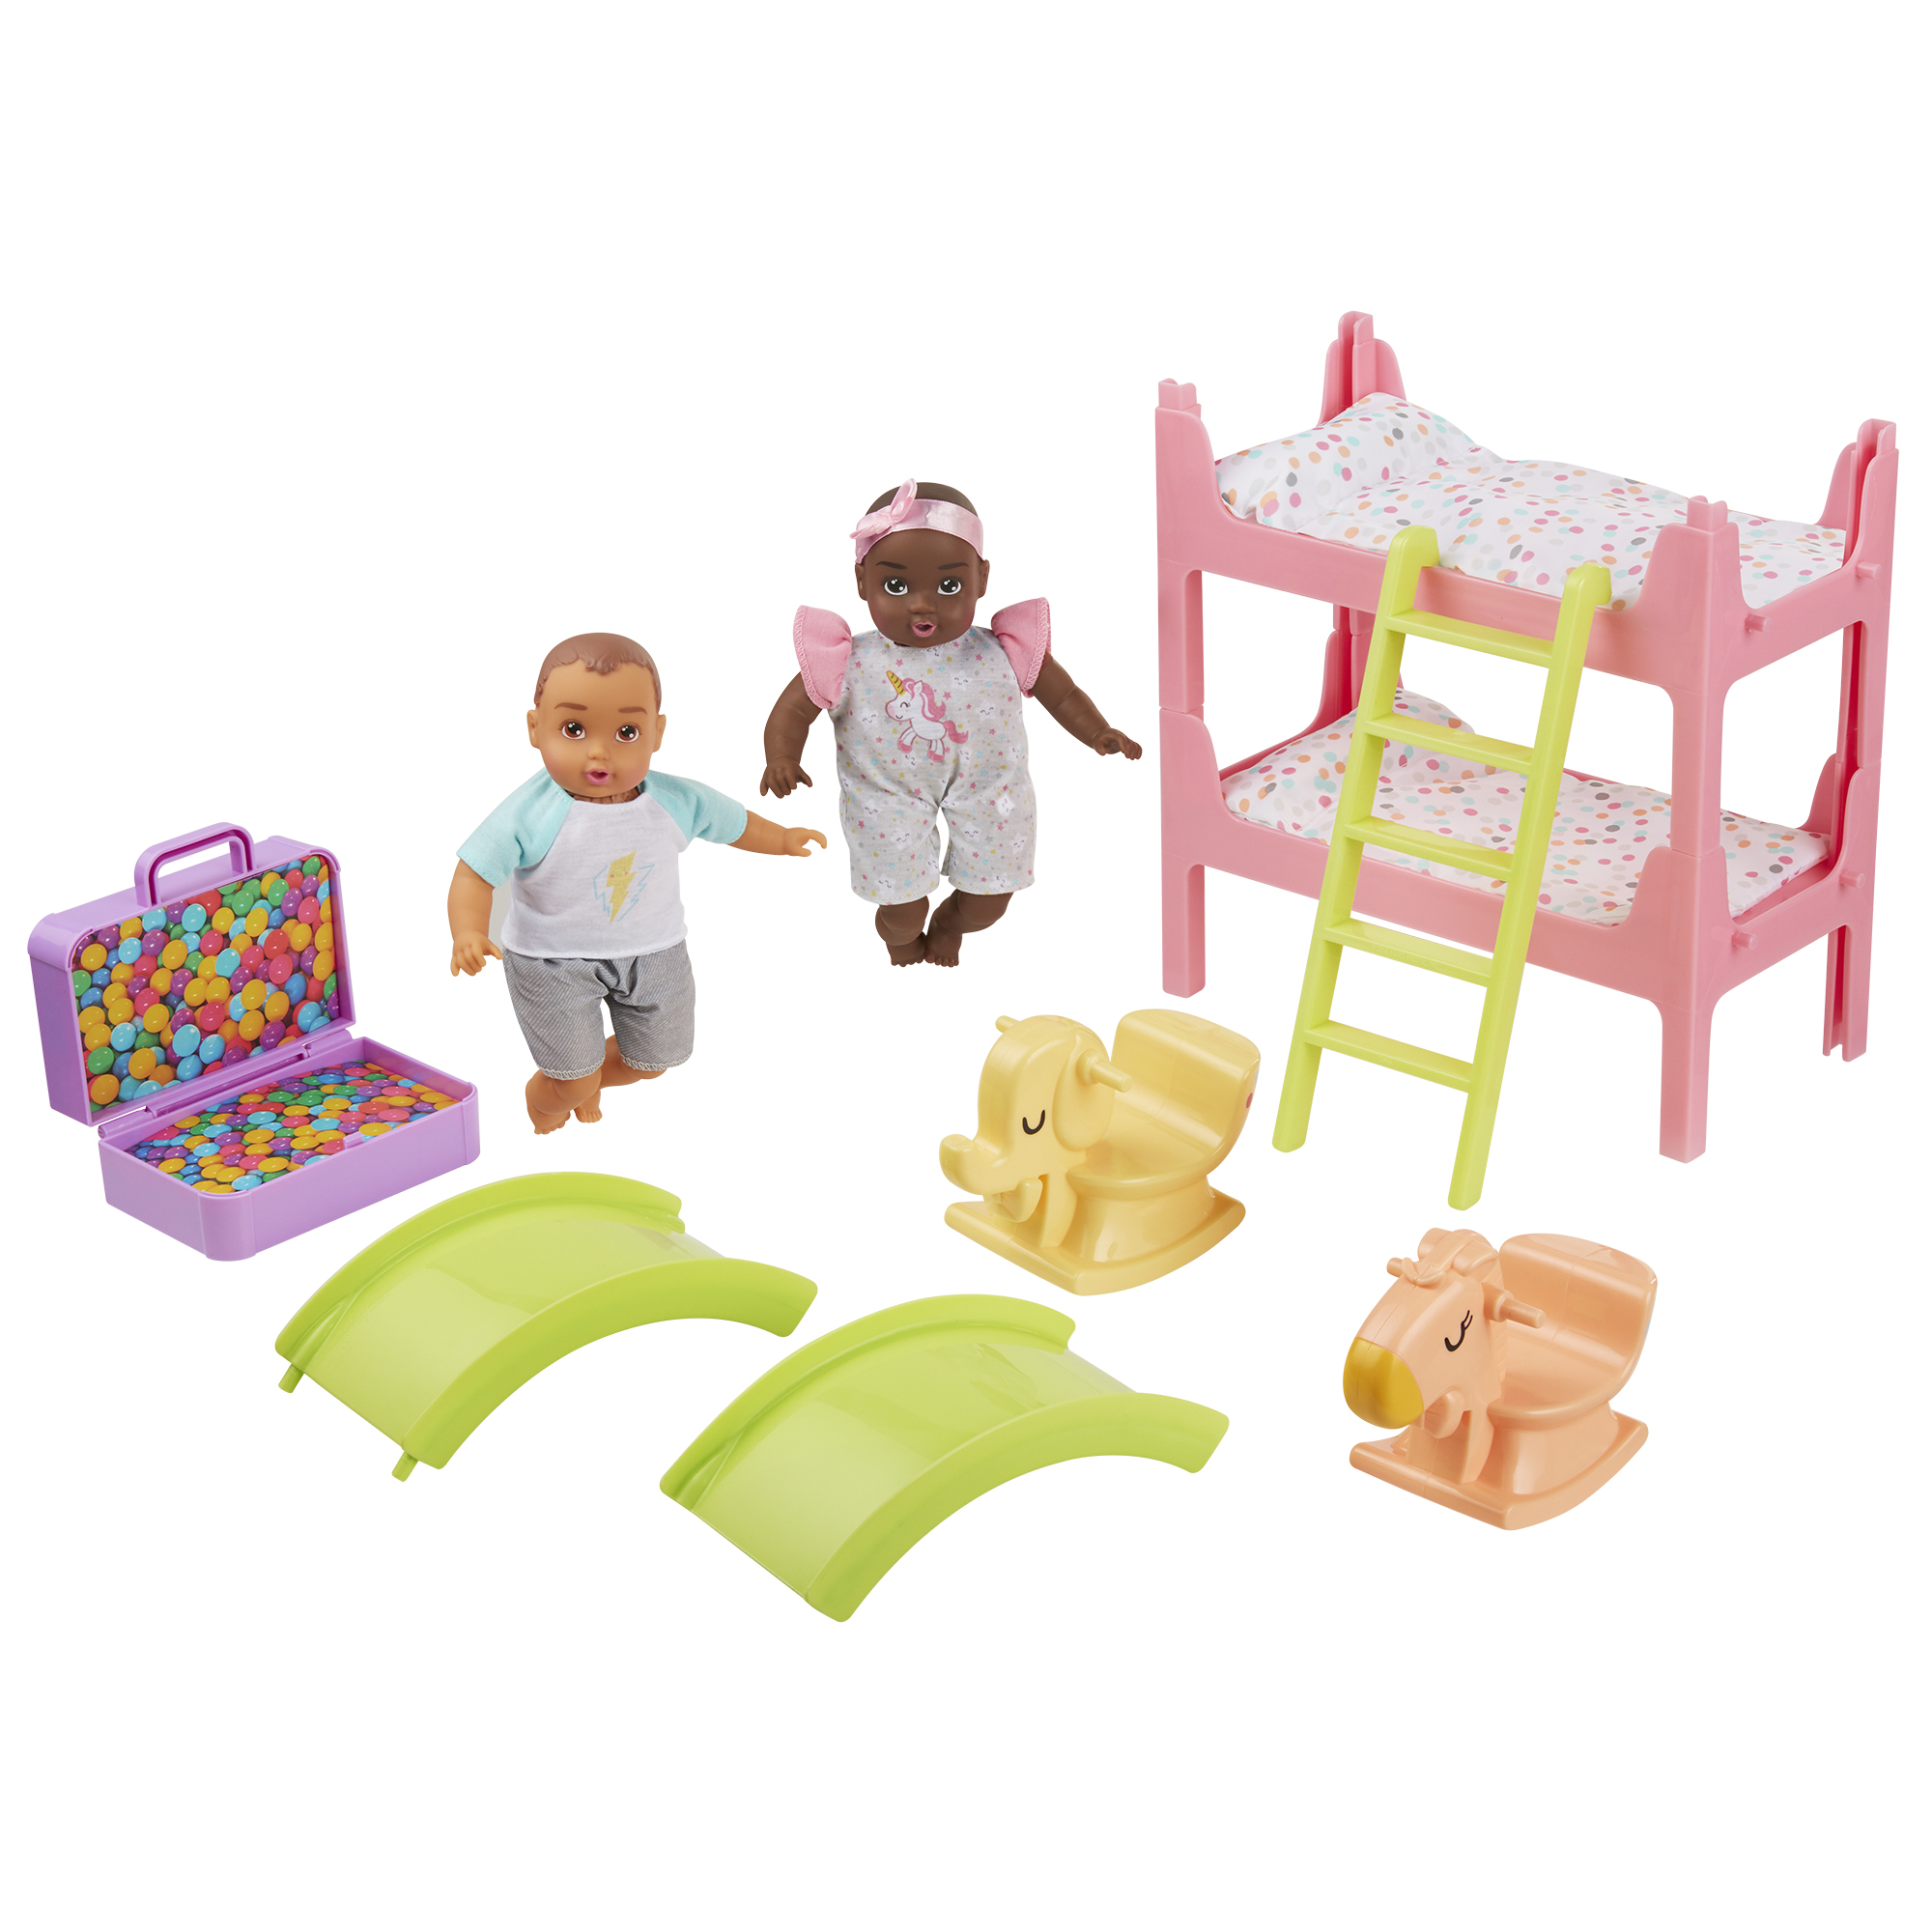 Perfectly Cute My Lil Baby ' Baby Bunk Bed Playroom Playset